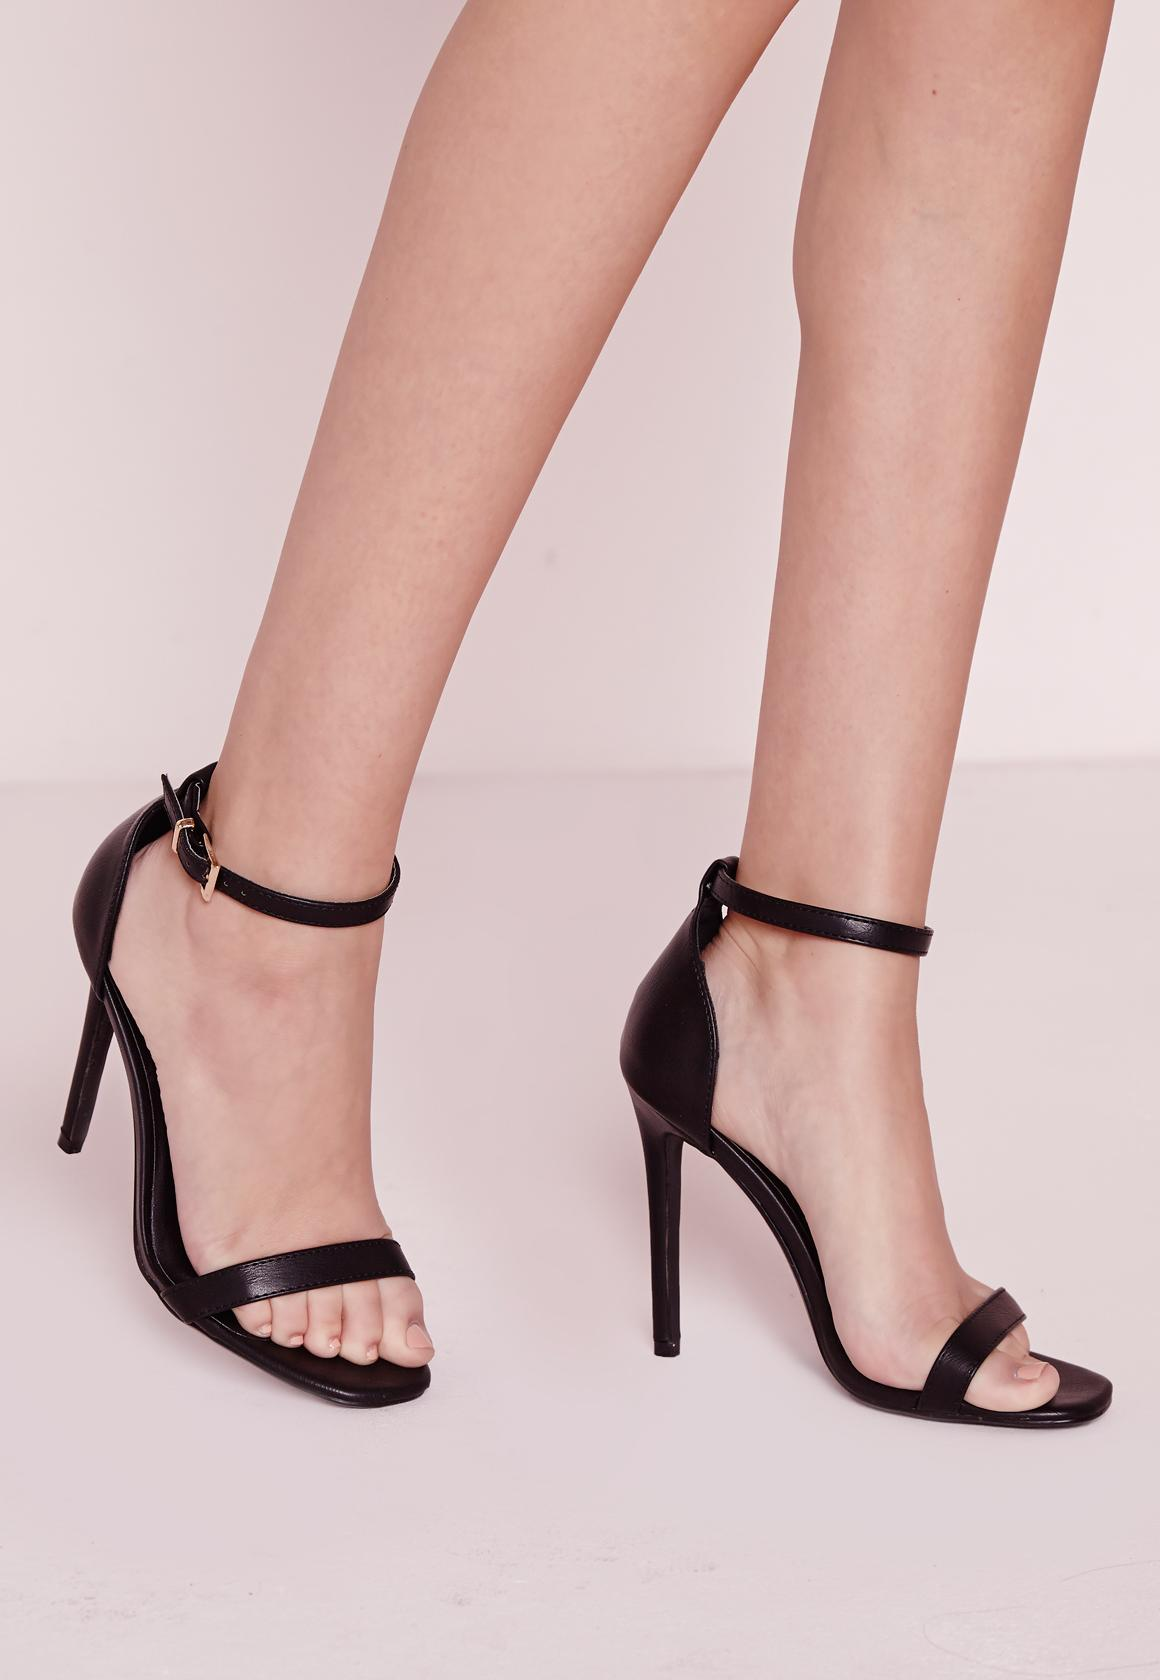 Barely There Strappy Heeled Sandals Black - Shoes - High Heels ...